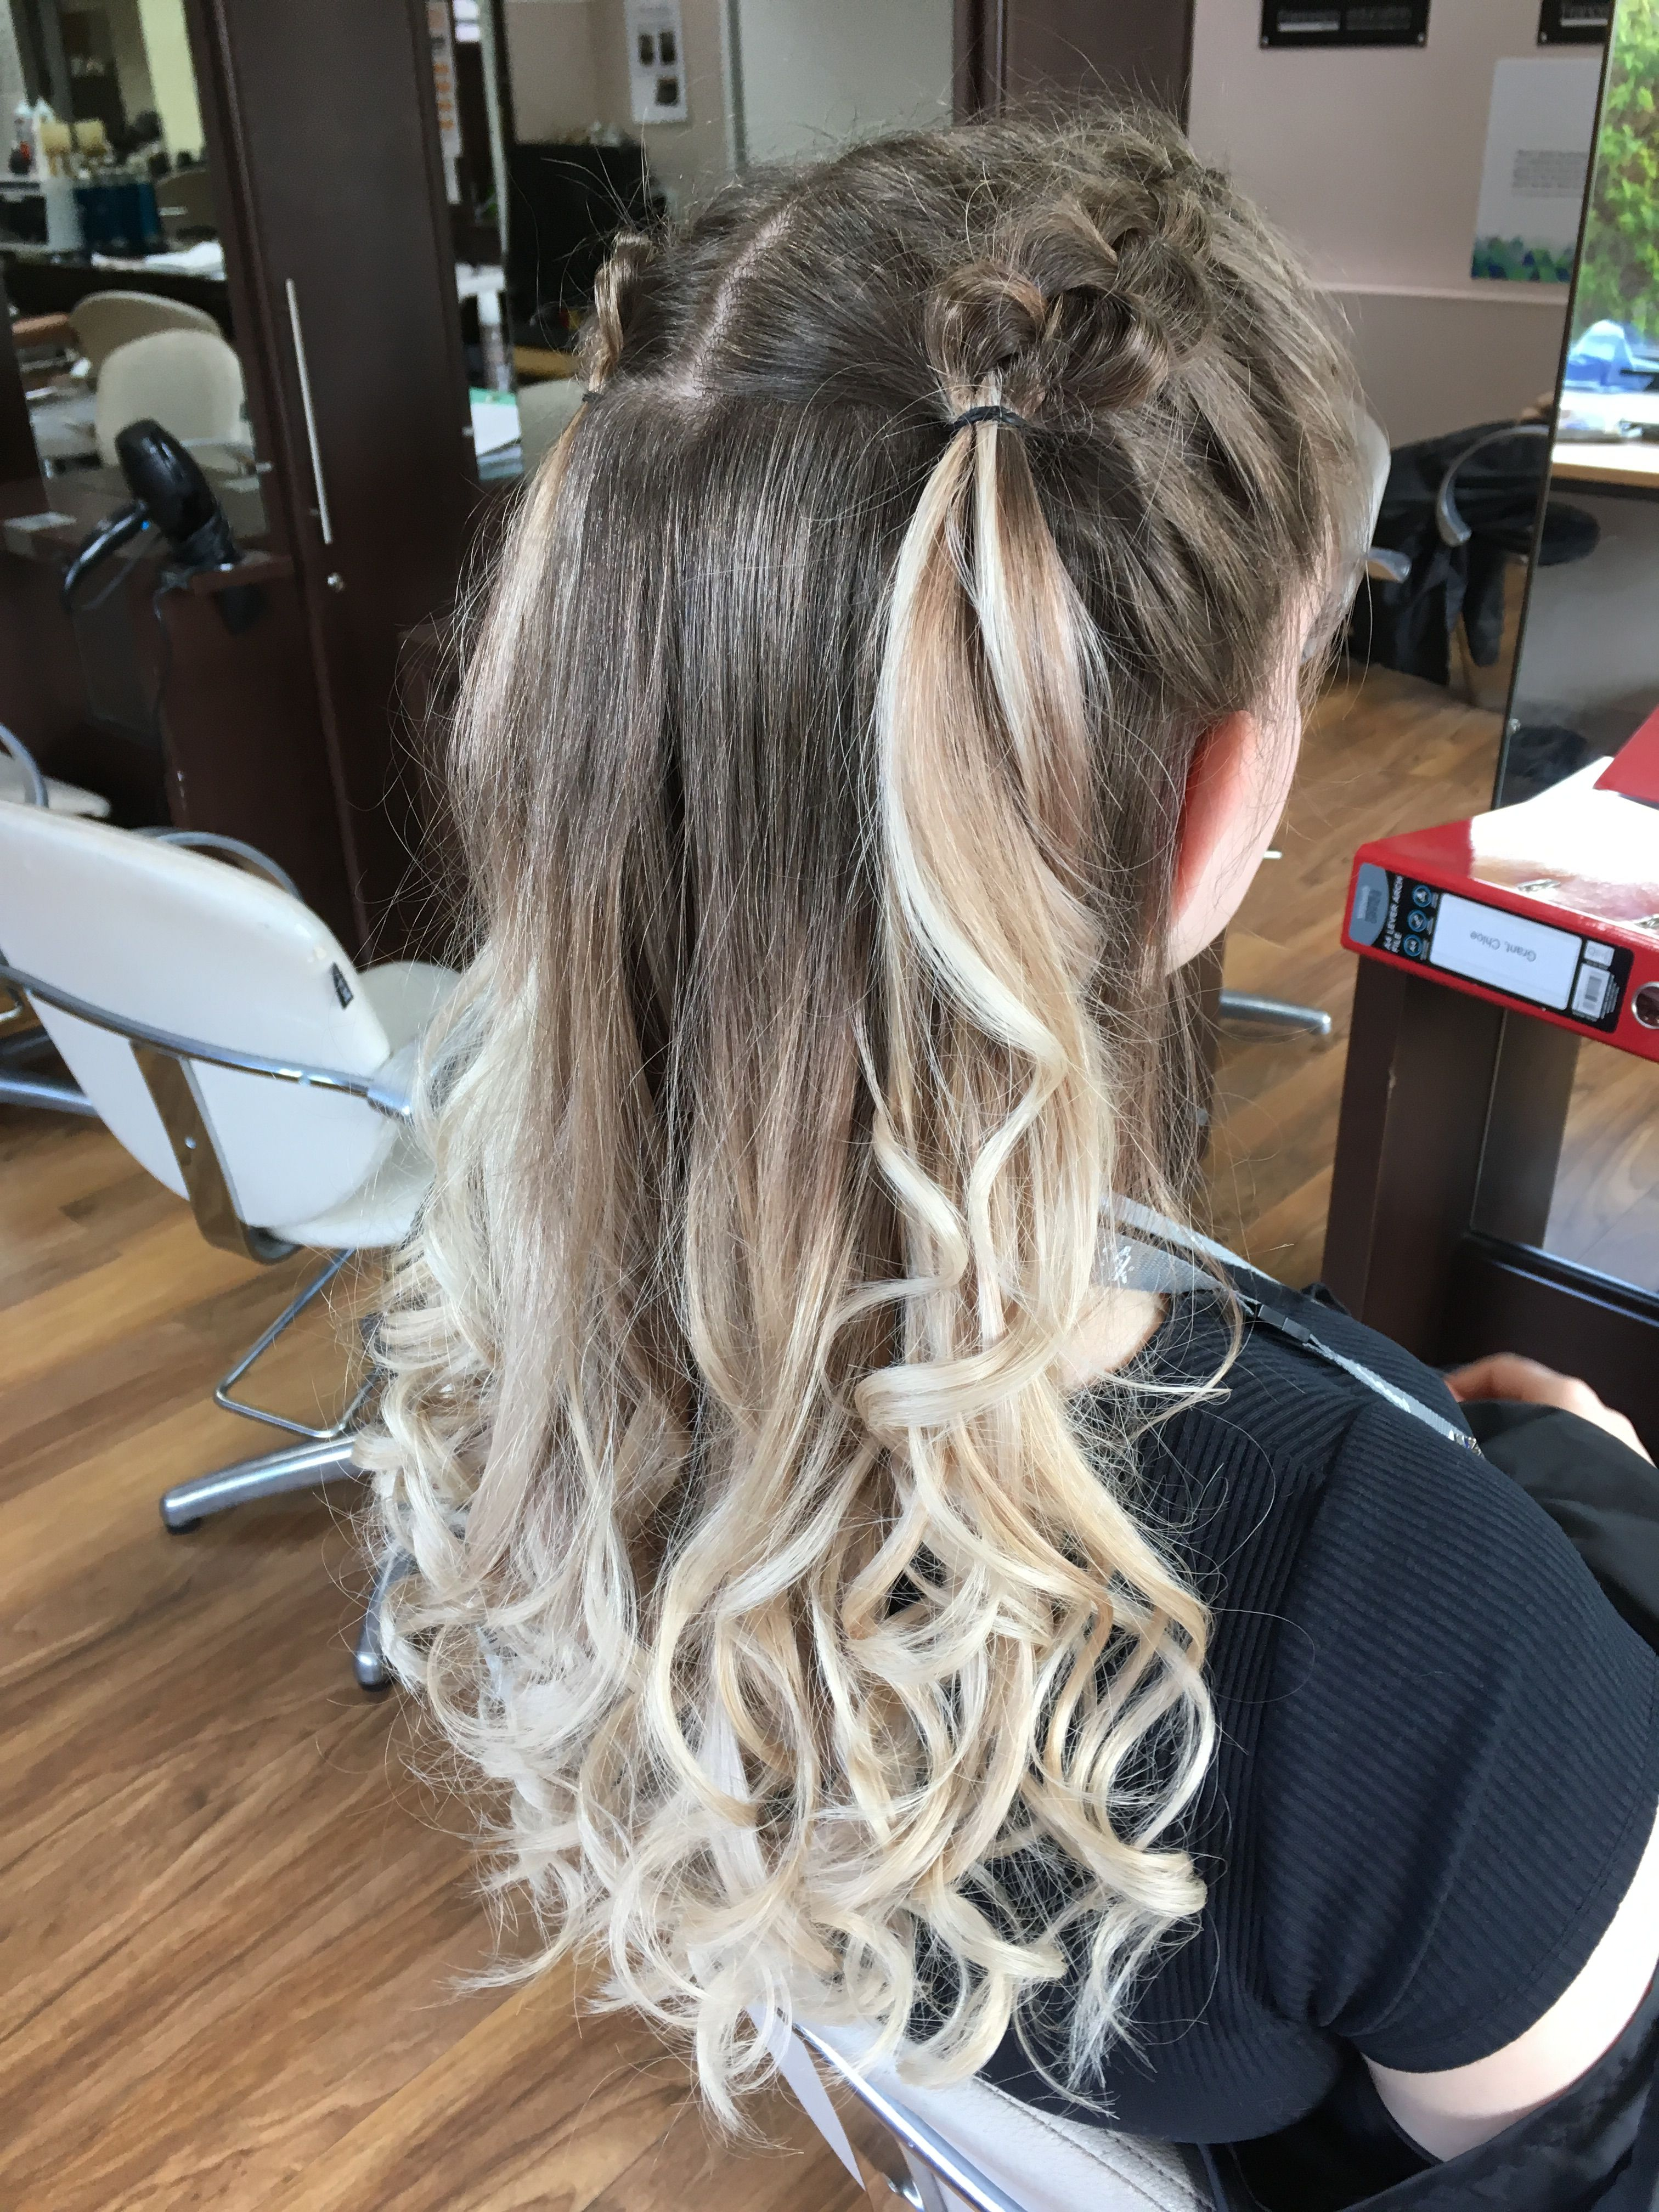 Portfolio Ref 24 Service Curled With Straighteners Dutch Braided The Top Section To Create A Half Up Half Up Hair Two Braid Hairstyles Braided Prom Hair